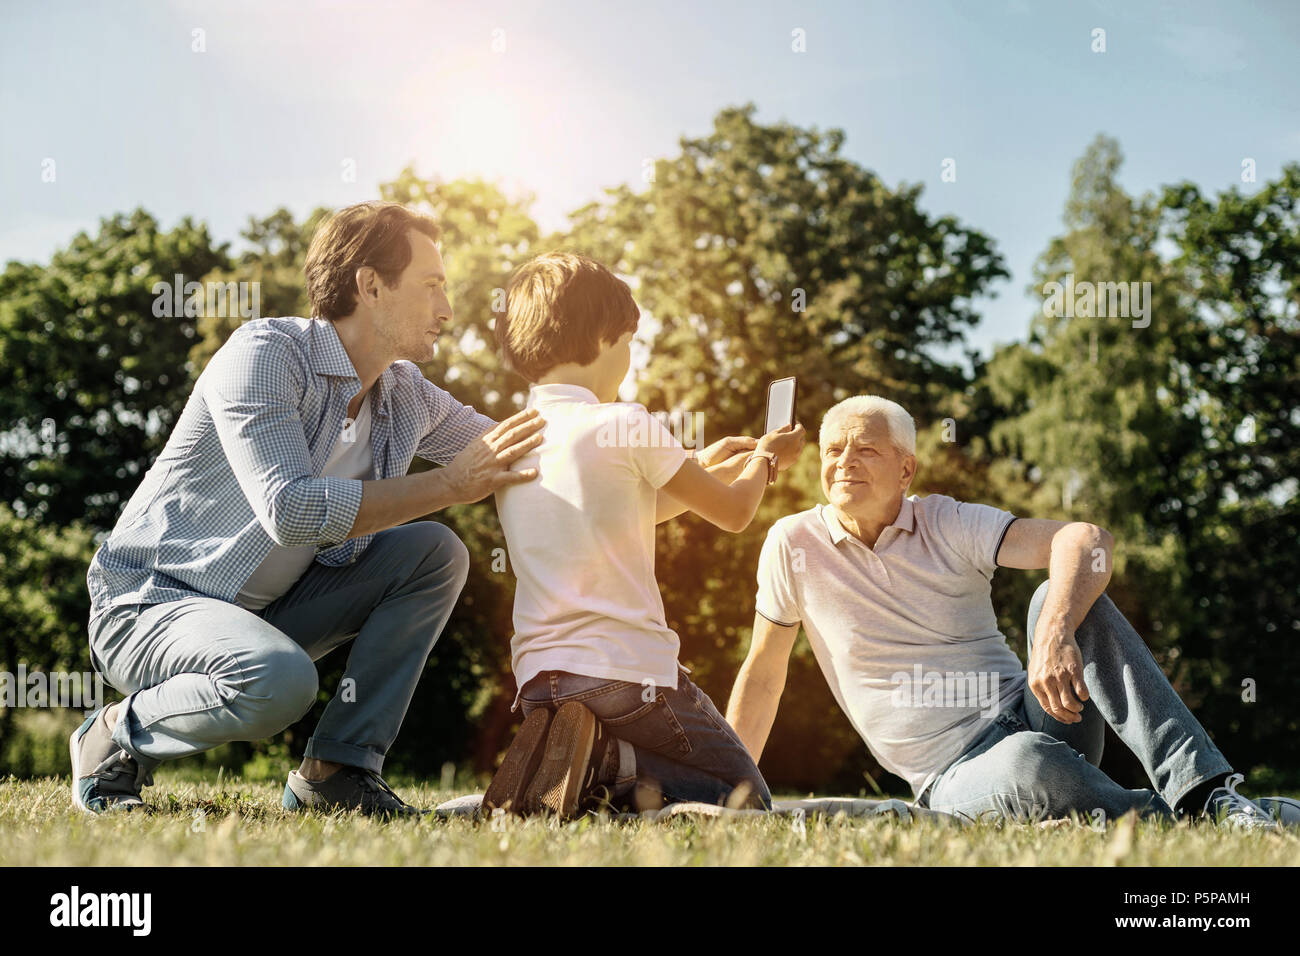 Boy and dad taking picture of grandpa - Stock Image